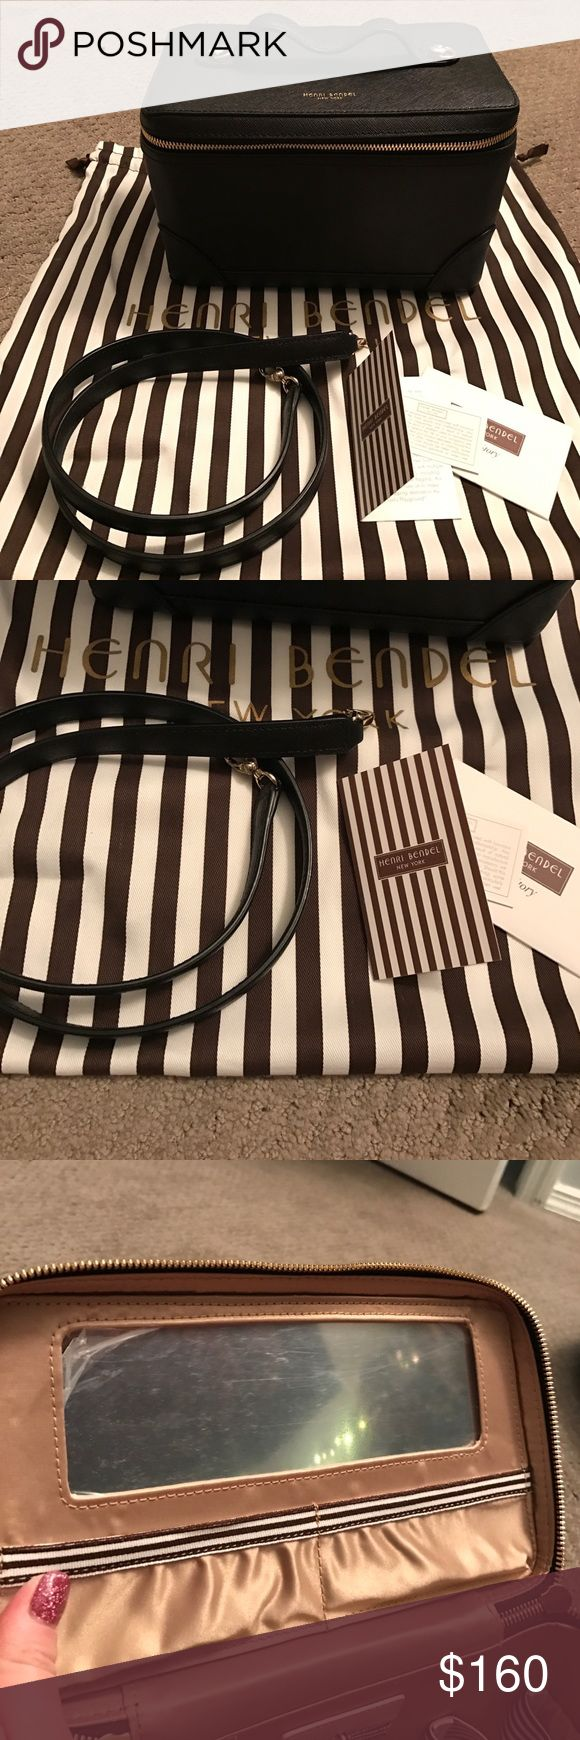 """NWOT Henri Bendel W 57th Train Case NWOT Henri Bendel W 57th Train Case - SOLD OUT - Purchased and never used. Mirror Protector sticker is still on! Black saffiano leather with gold accents. Includes dust bag, Henri Bendel care and brand story cards, and attachable shoulder strap. Slip pockets around 3 sides of inside of case and elastic band on back to keep slightly items in place. Approximately 9"""" length and 6"""" tall and 5"""" wide. Shoulder strap approximately 34"""" long. Same bag used as a…"""